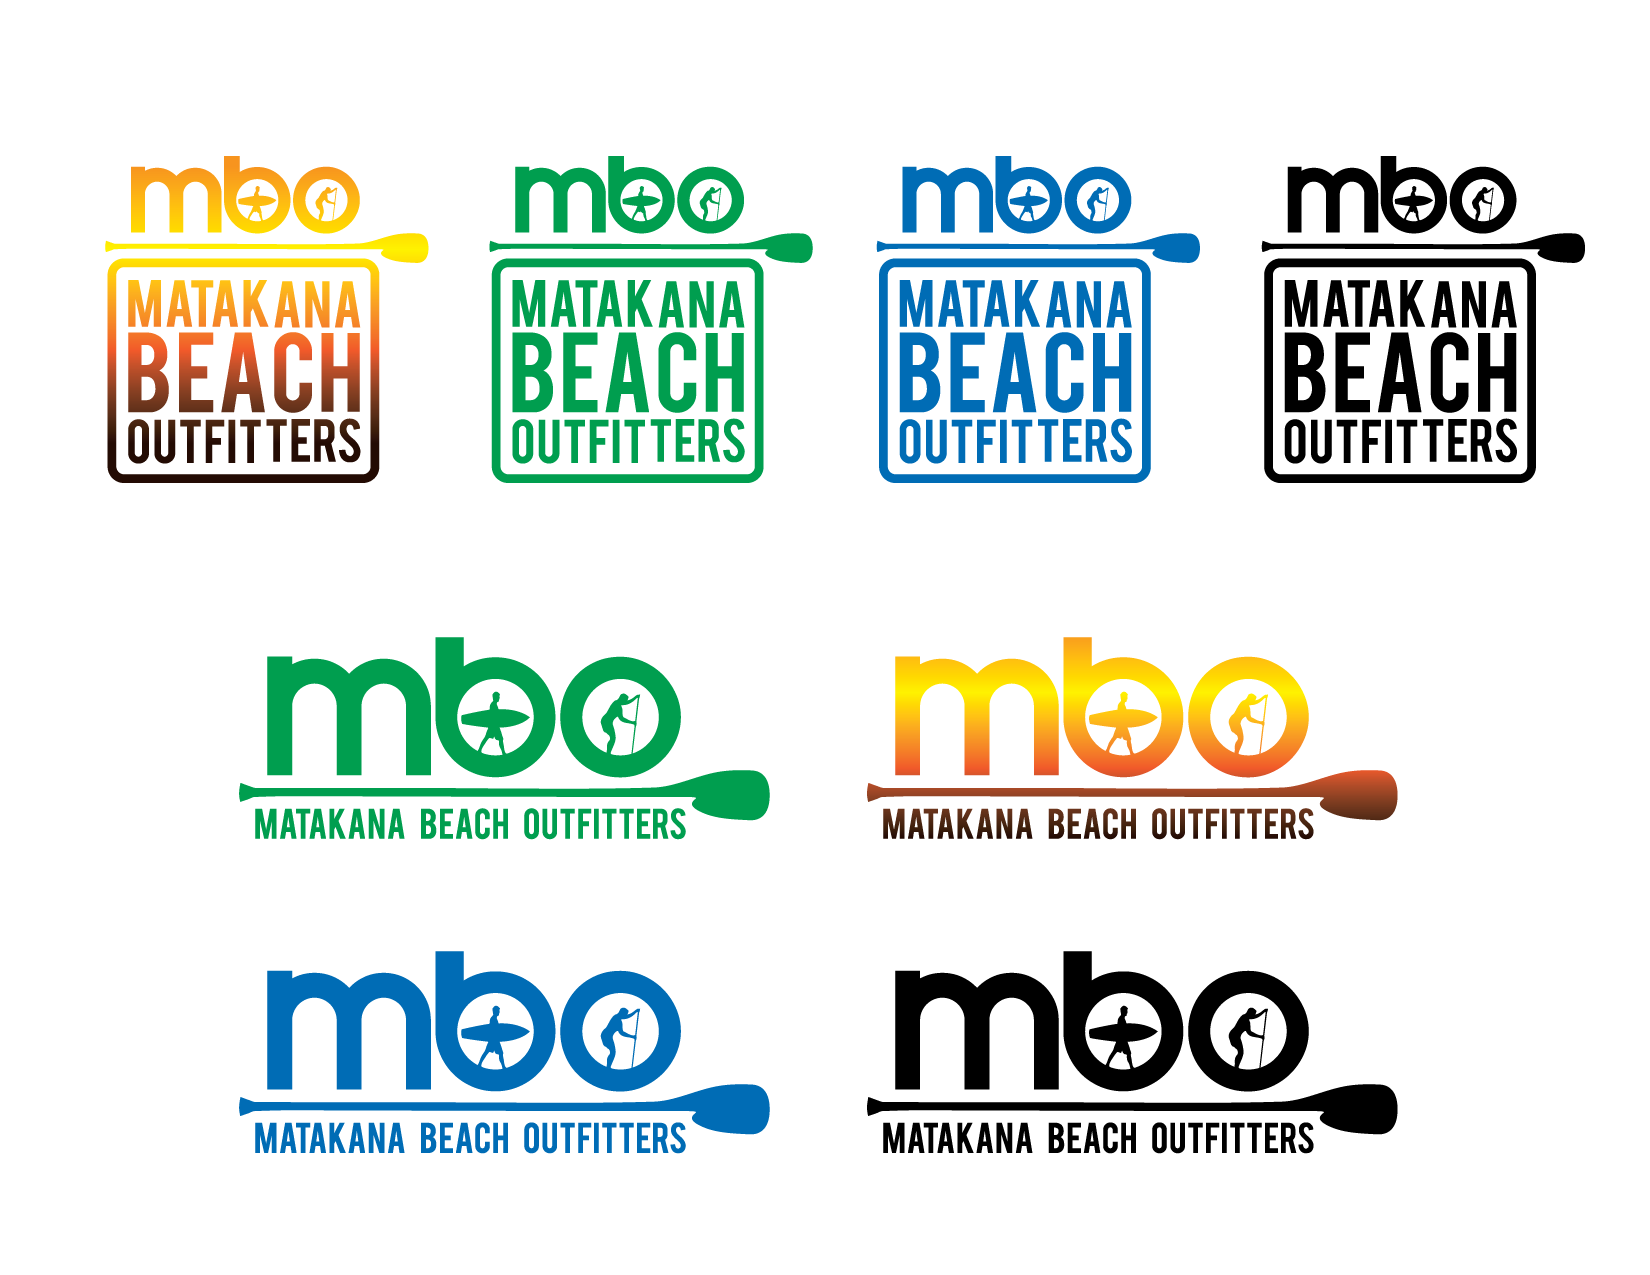 New logo wanted for Matakana Beach Outfitters